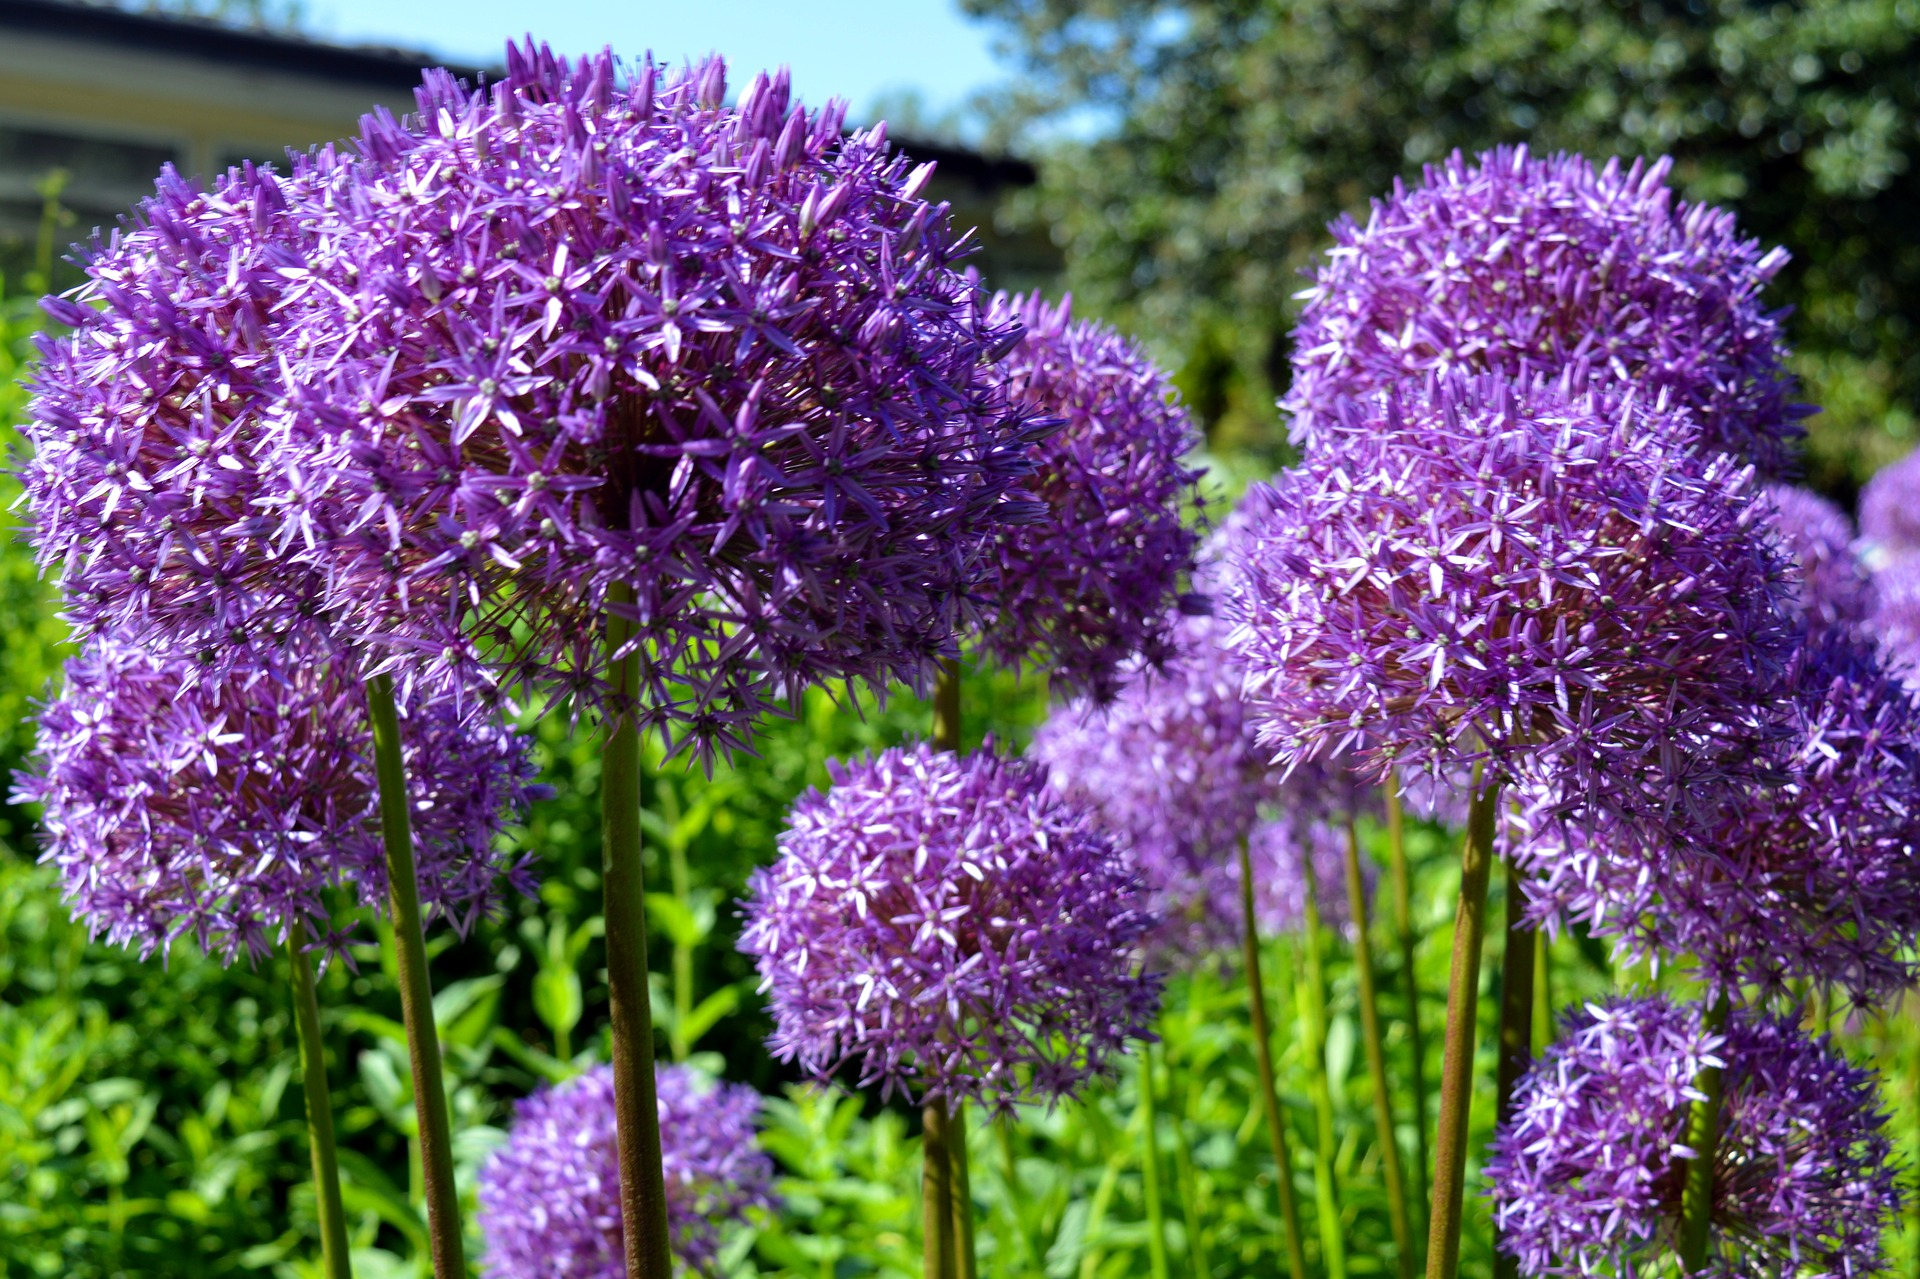 Allium von Mai - Sept.